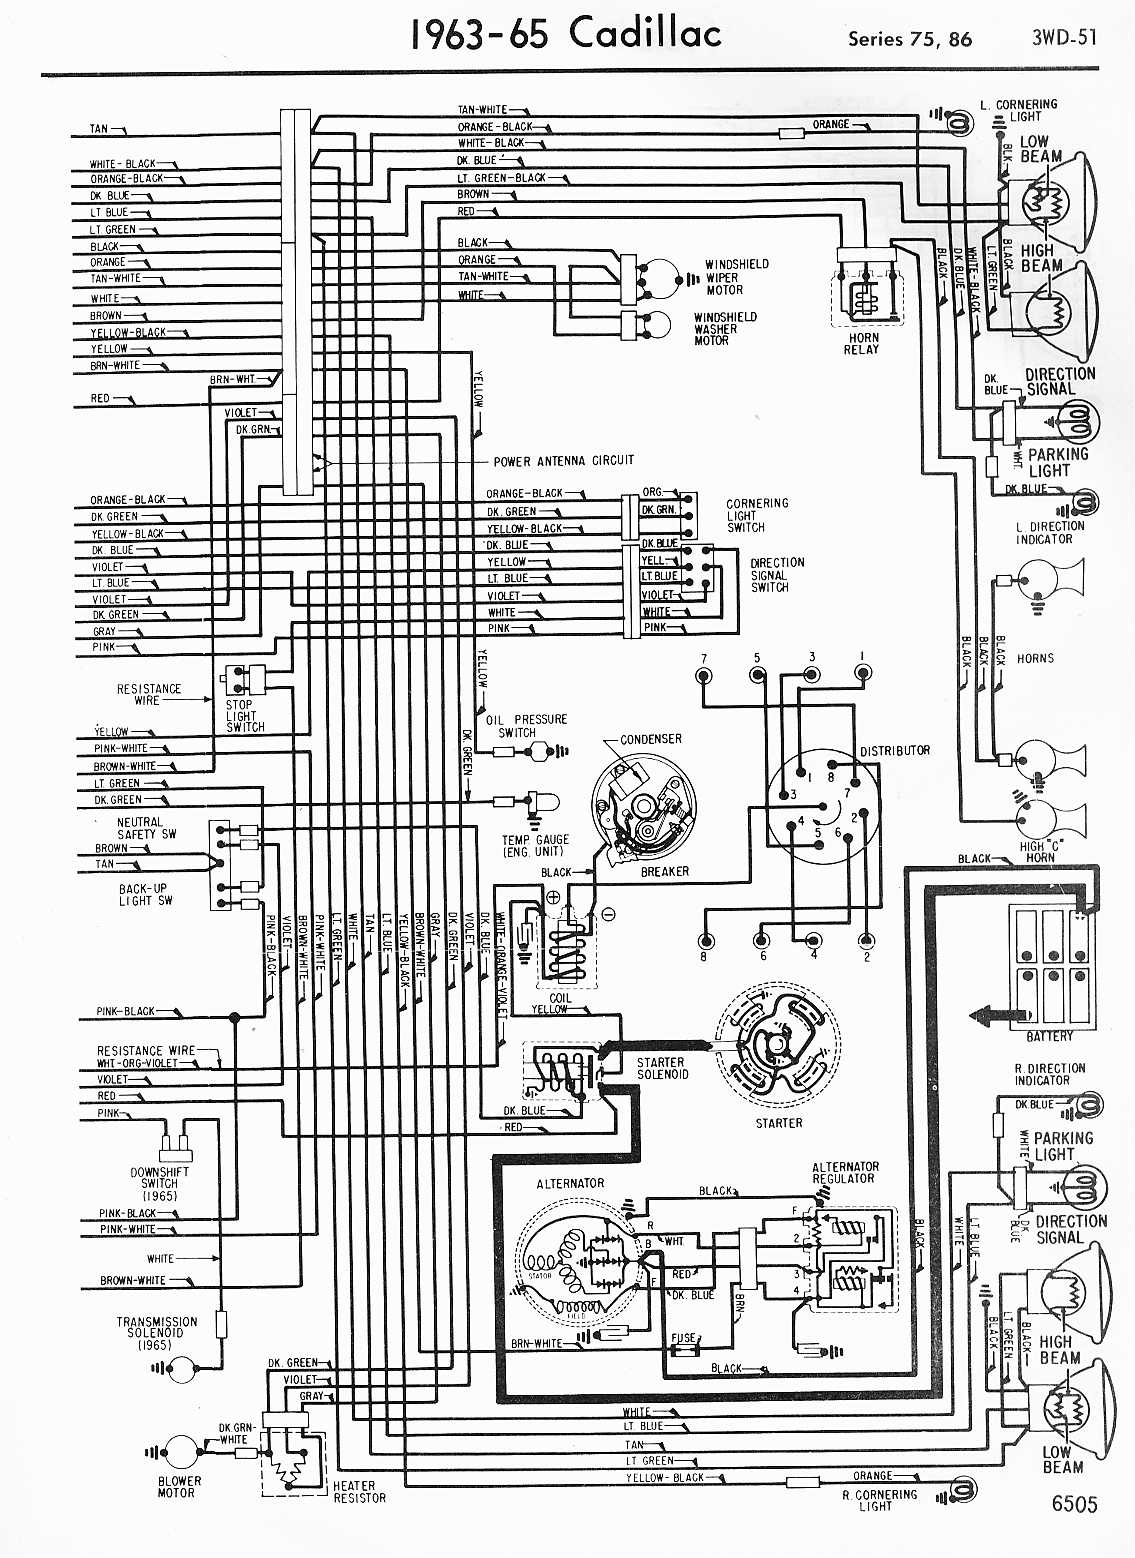 MWireCadi65_3WD 051 cadillac wiring diagrams 1957 1965 Cadillac DeVille Transmission Diagram at bayanpartner.co